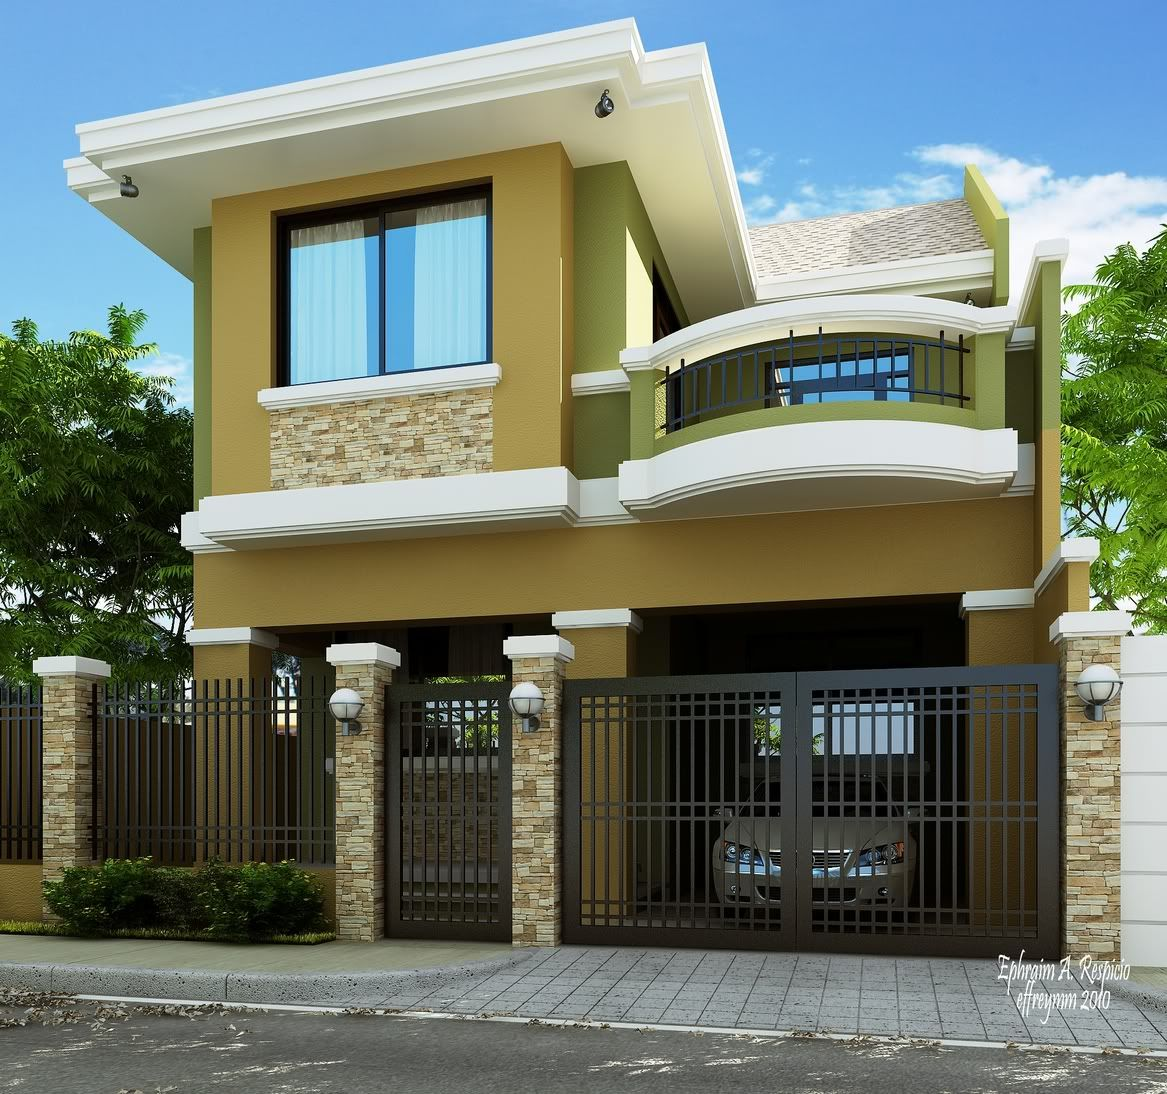 awesome 25 lakhs cost estimated kerala home fashion girl awesome 25 lakhs cost estimated kerala home fashion girl street pinterest kerala house elevation and house